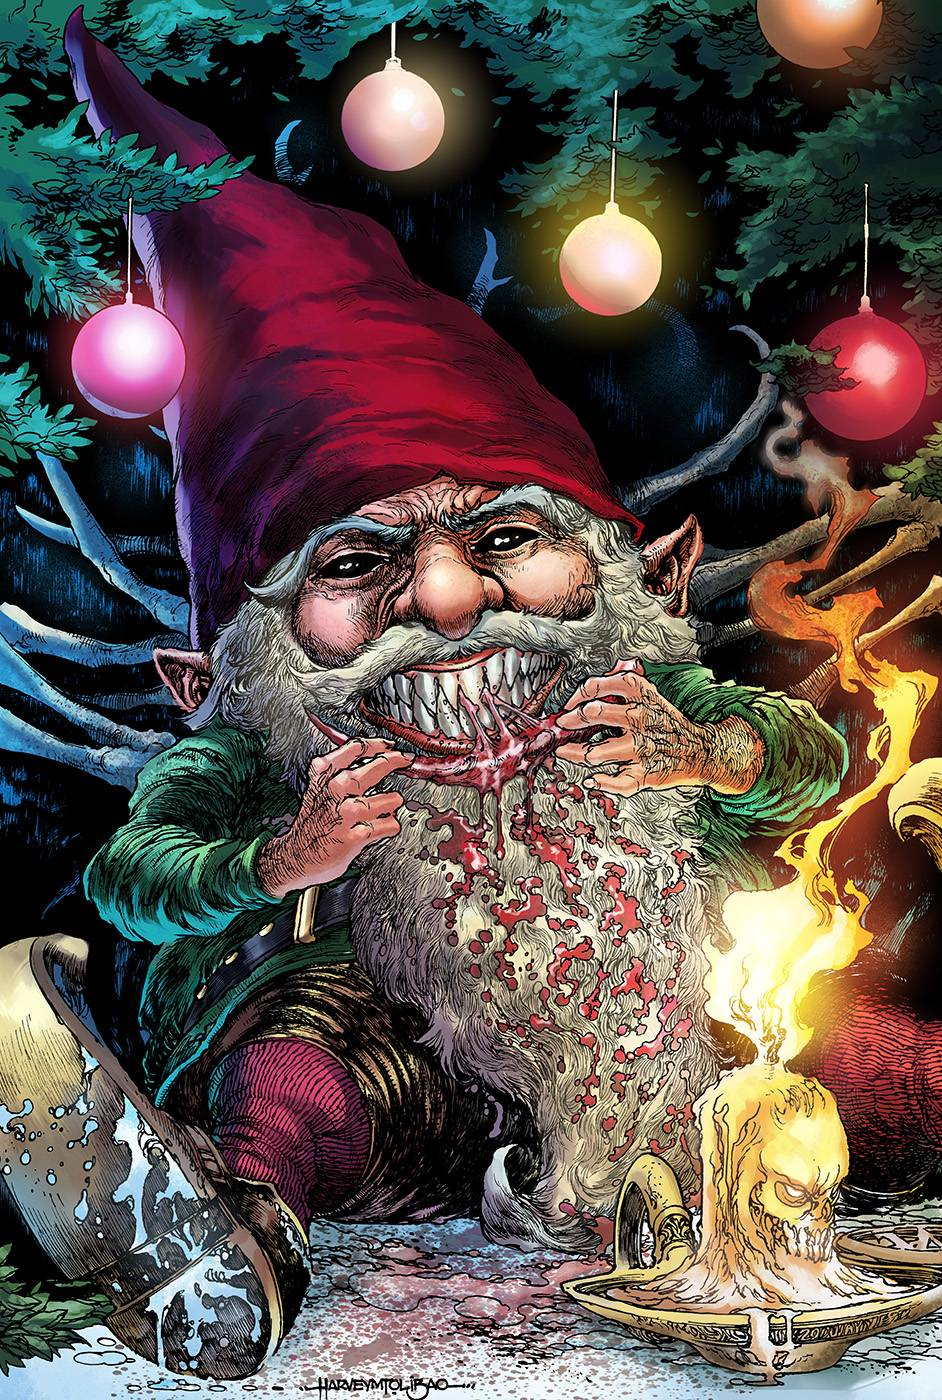 GRIMM FAIRY TALES HOLIDAY SPECIAL